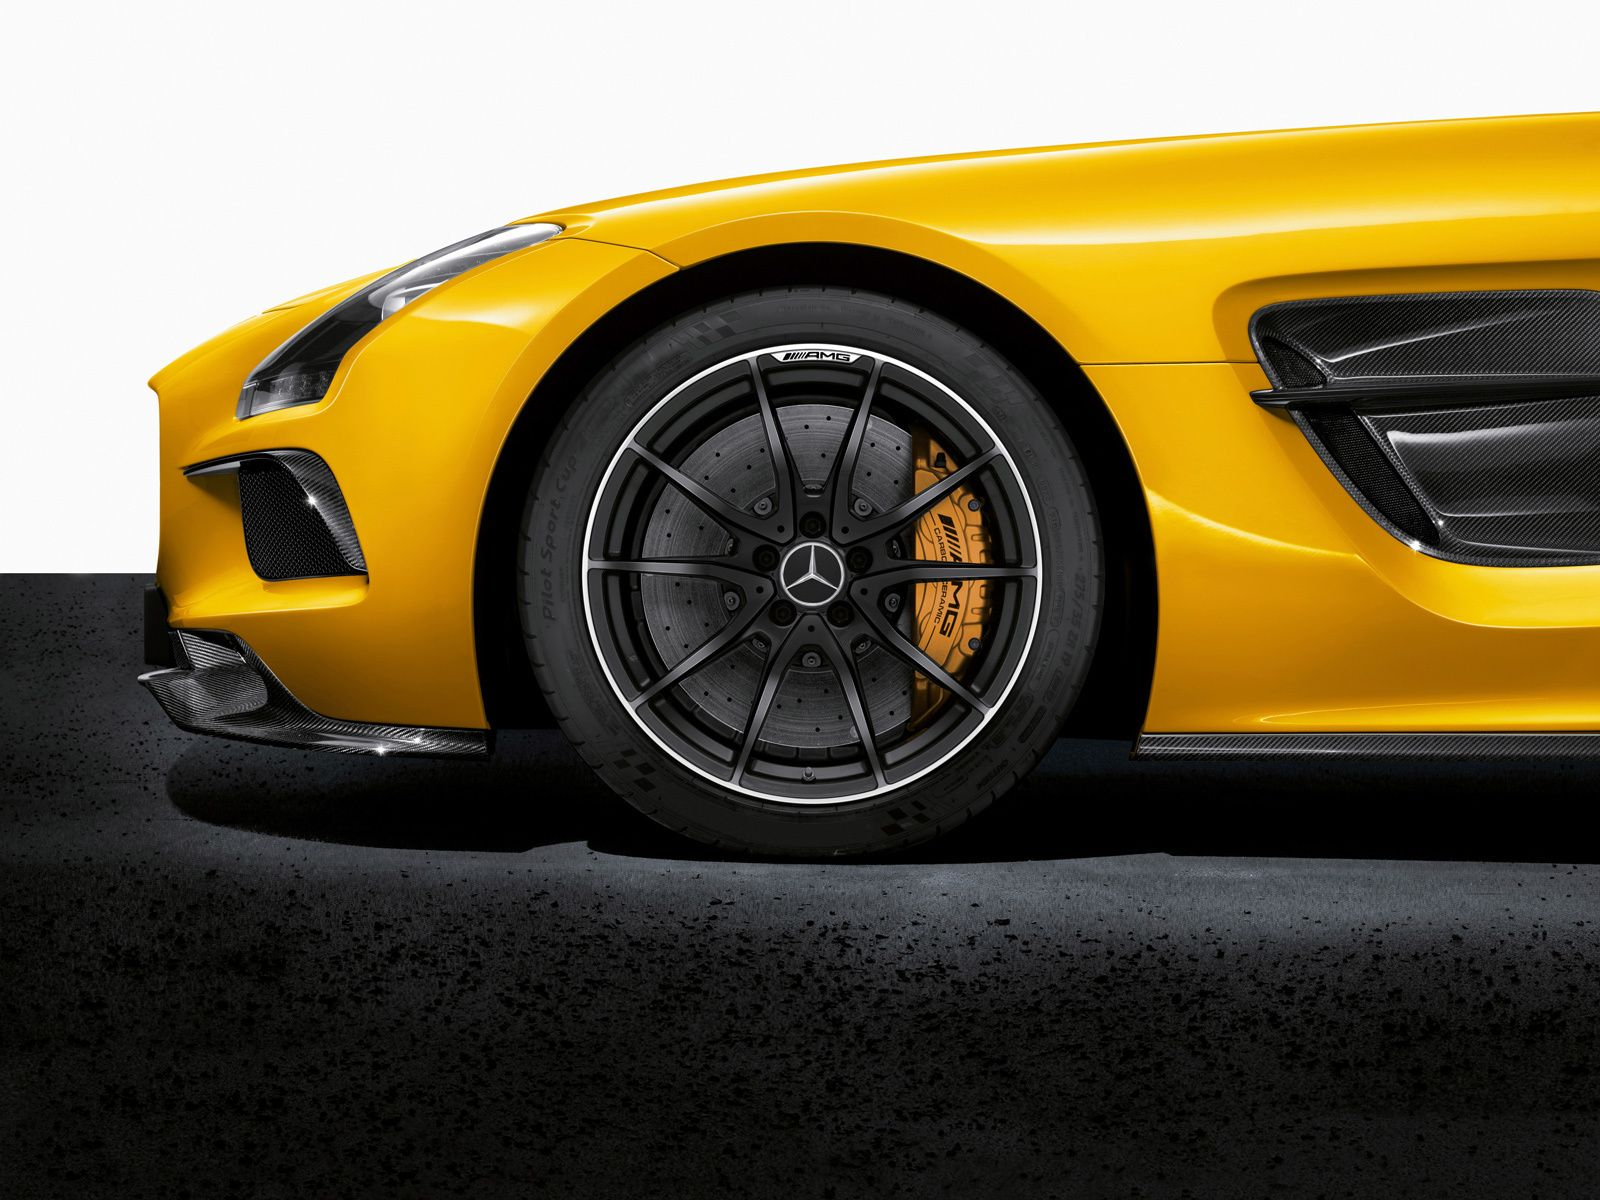 Mercedes benz has announced the u prices for the 2014 mercedes benz sls amg coup black series and the 2014 amg edition 507 sedan and coupe